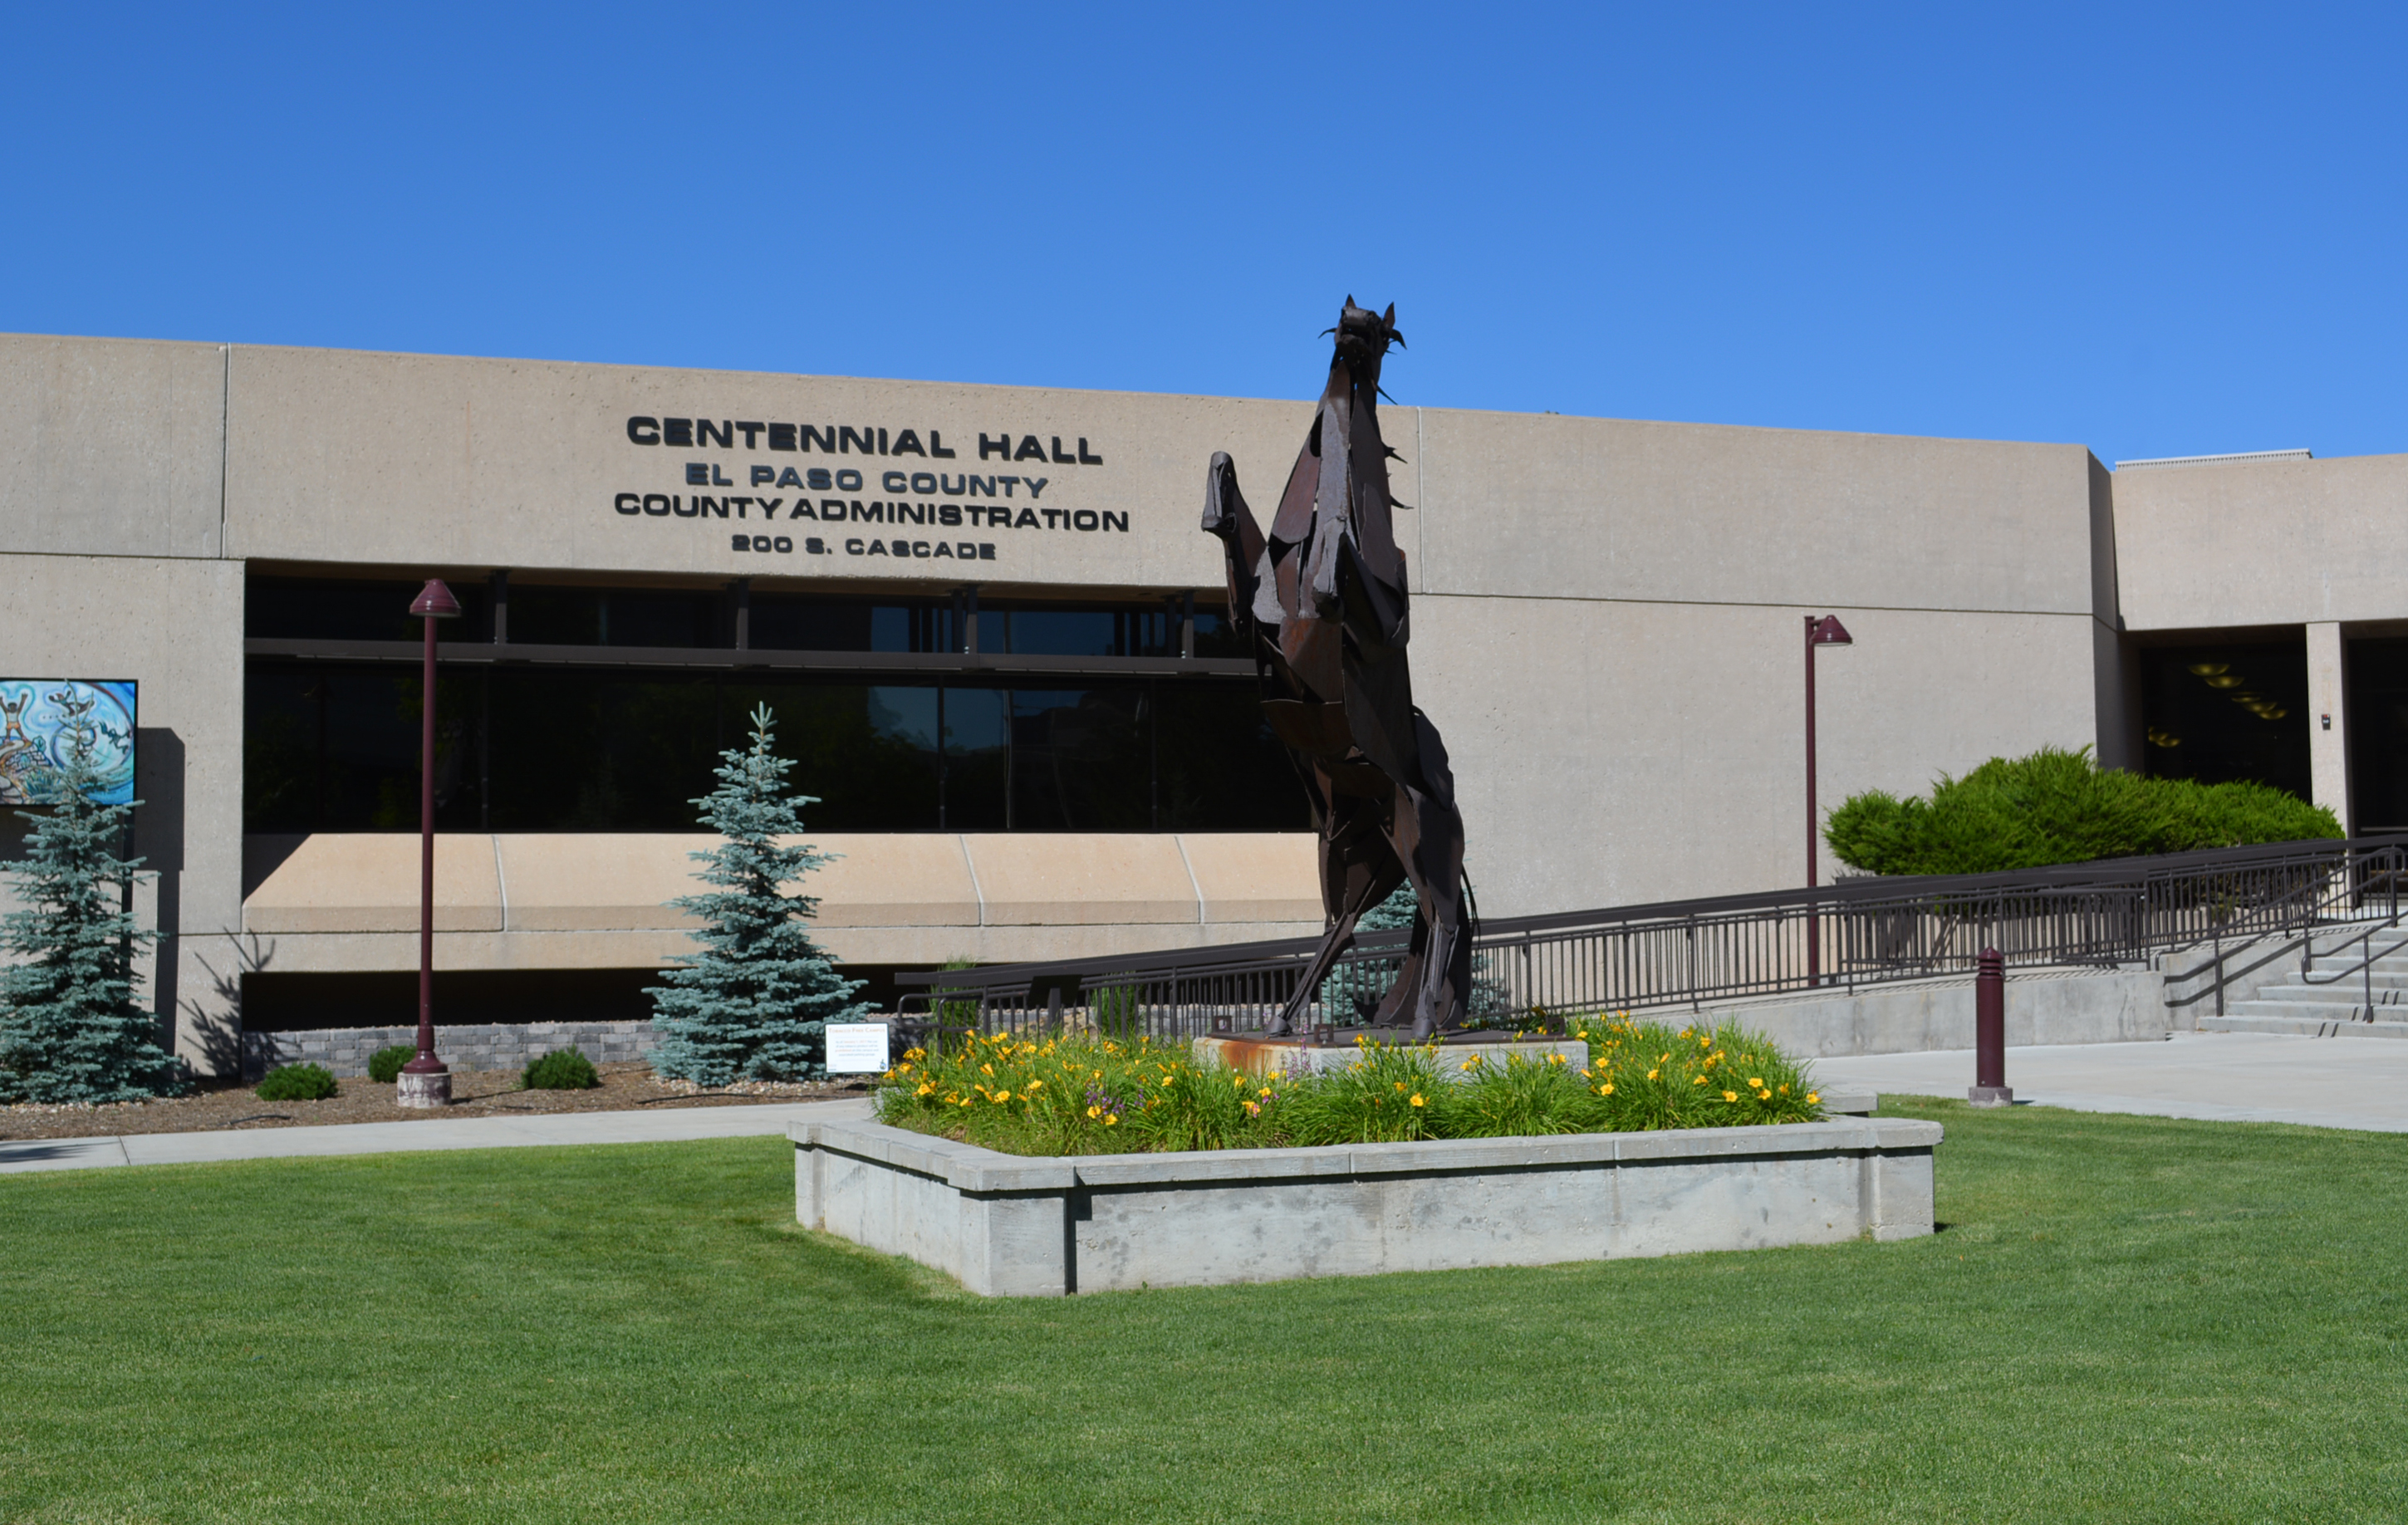 Centennial Hall with Rearing Horse June 2017